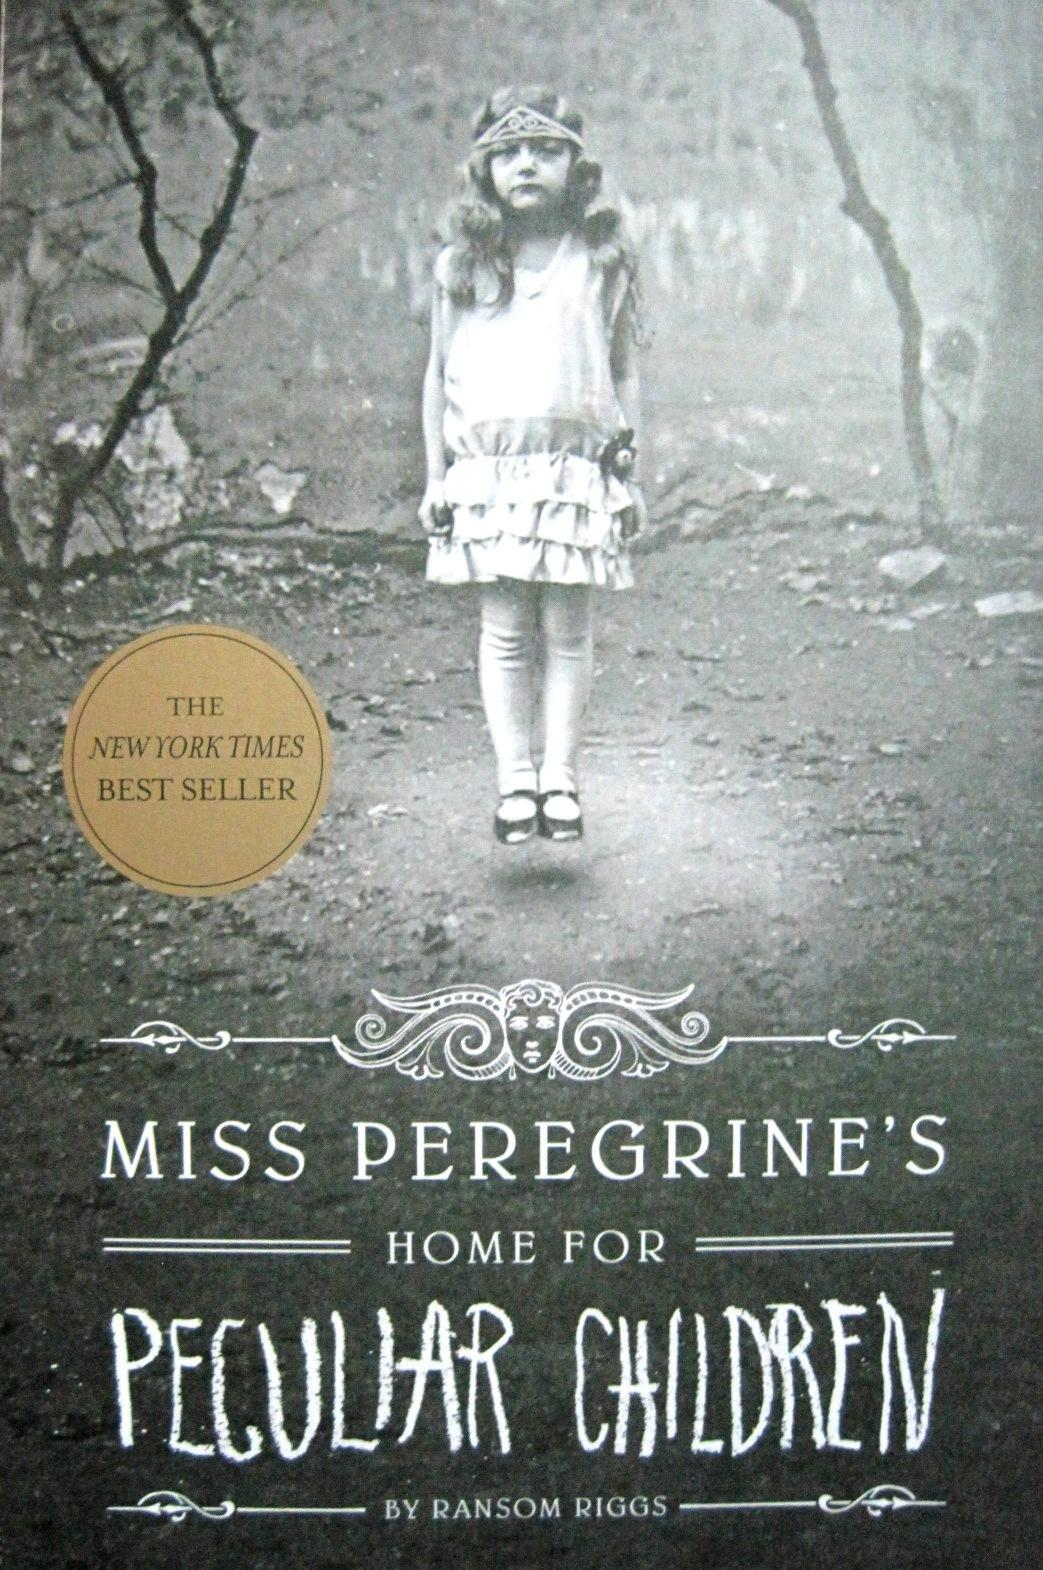 Has anyone read Miss Peregrines Home For Peculiar Children?